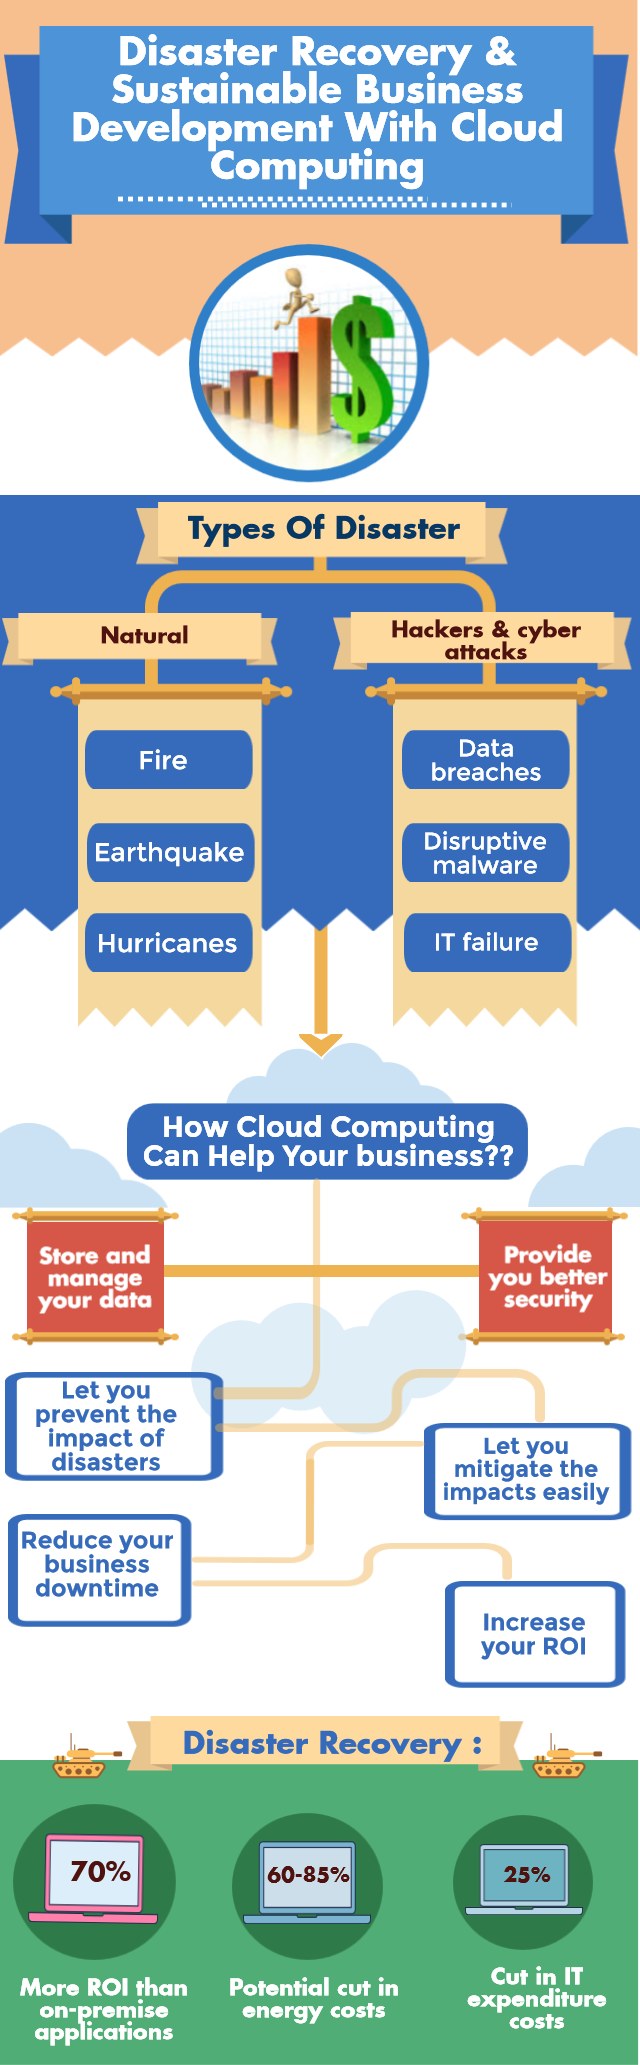 Disaster Recovery & Business Development With Cloud Computing